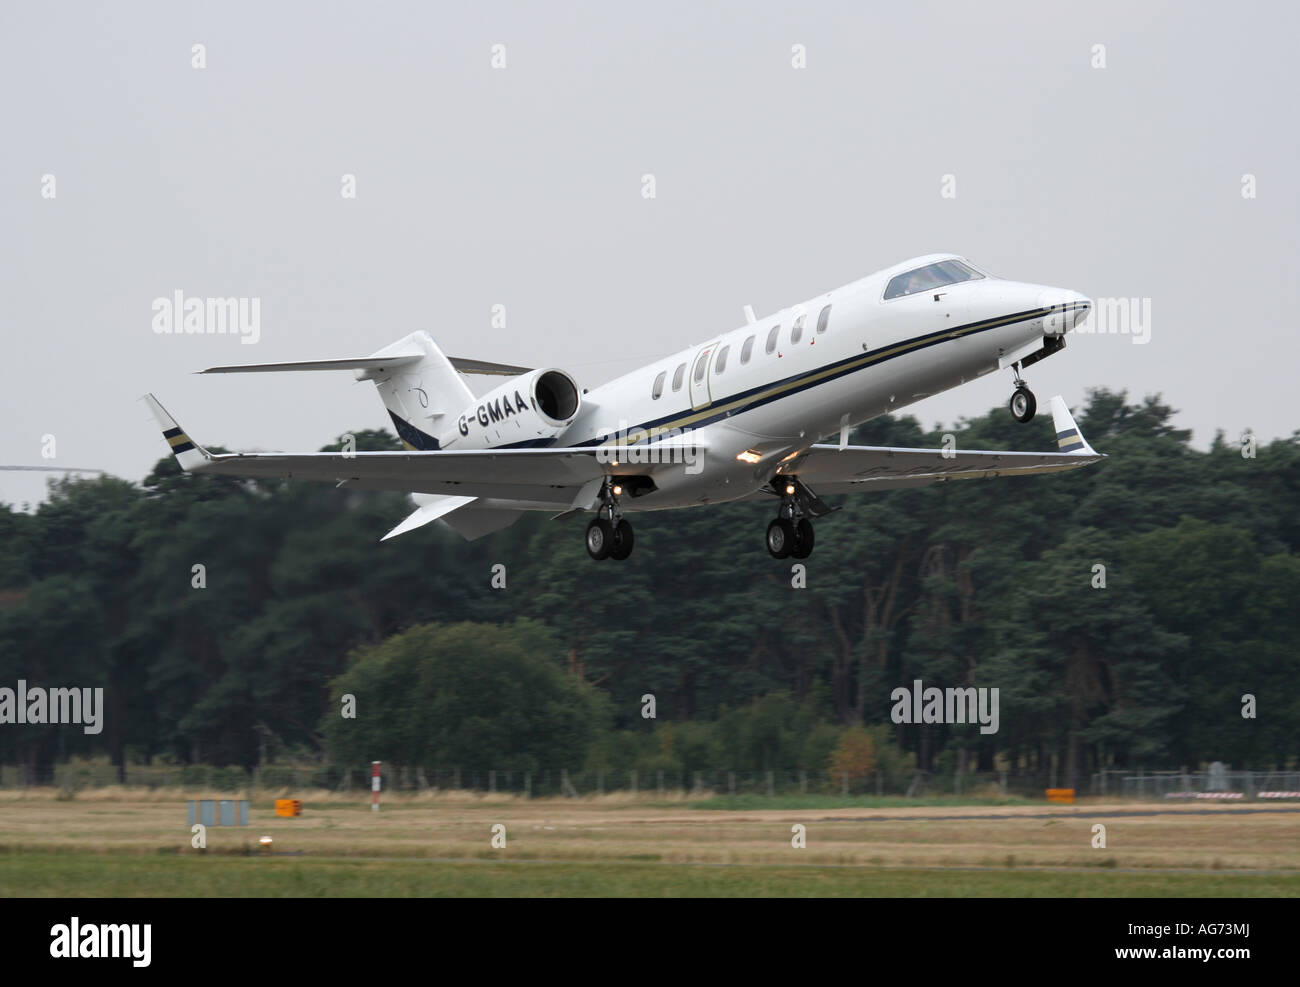 Business aviation. Bombardier Learjet 45 executive jet taking off from Farnborough, UK - Stock Image